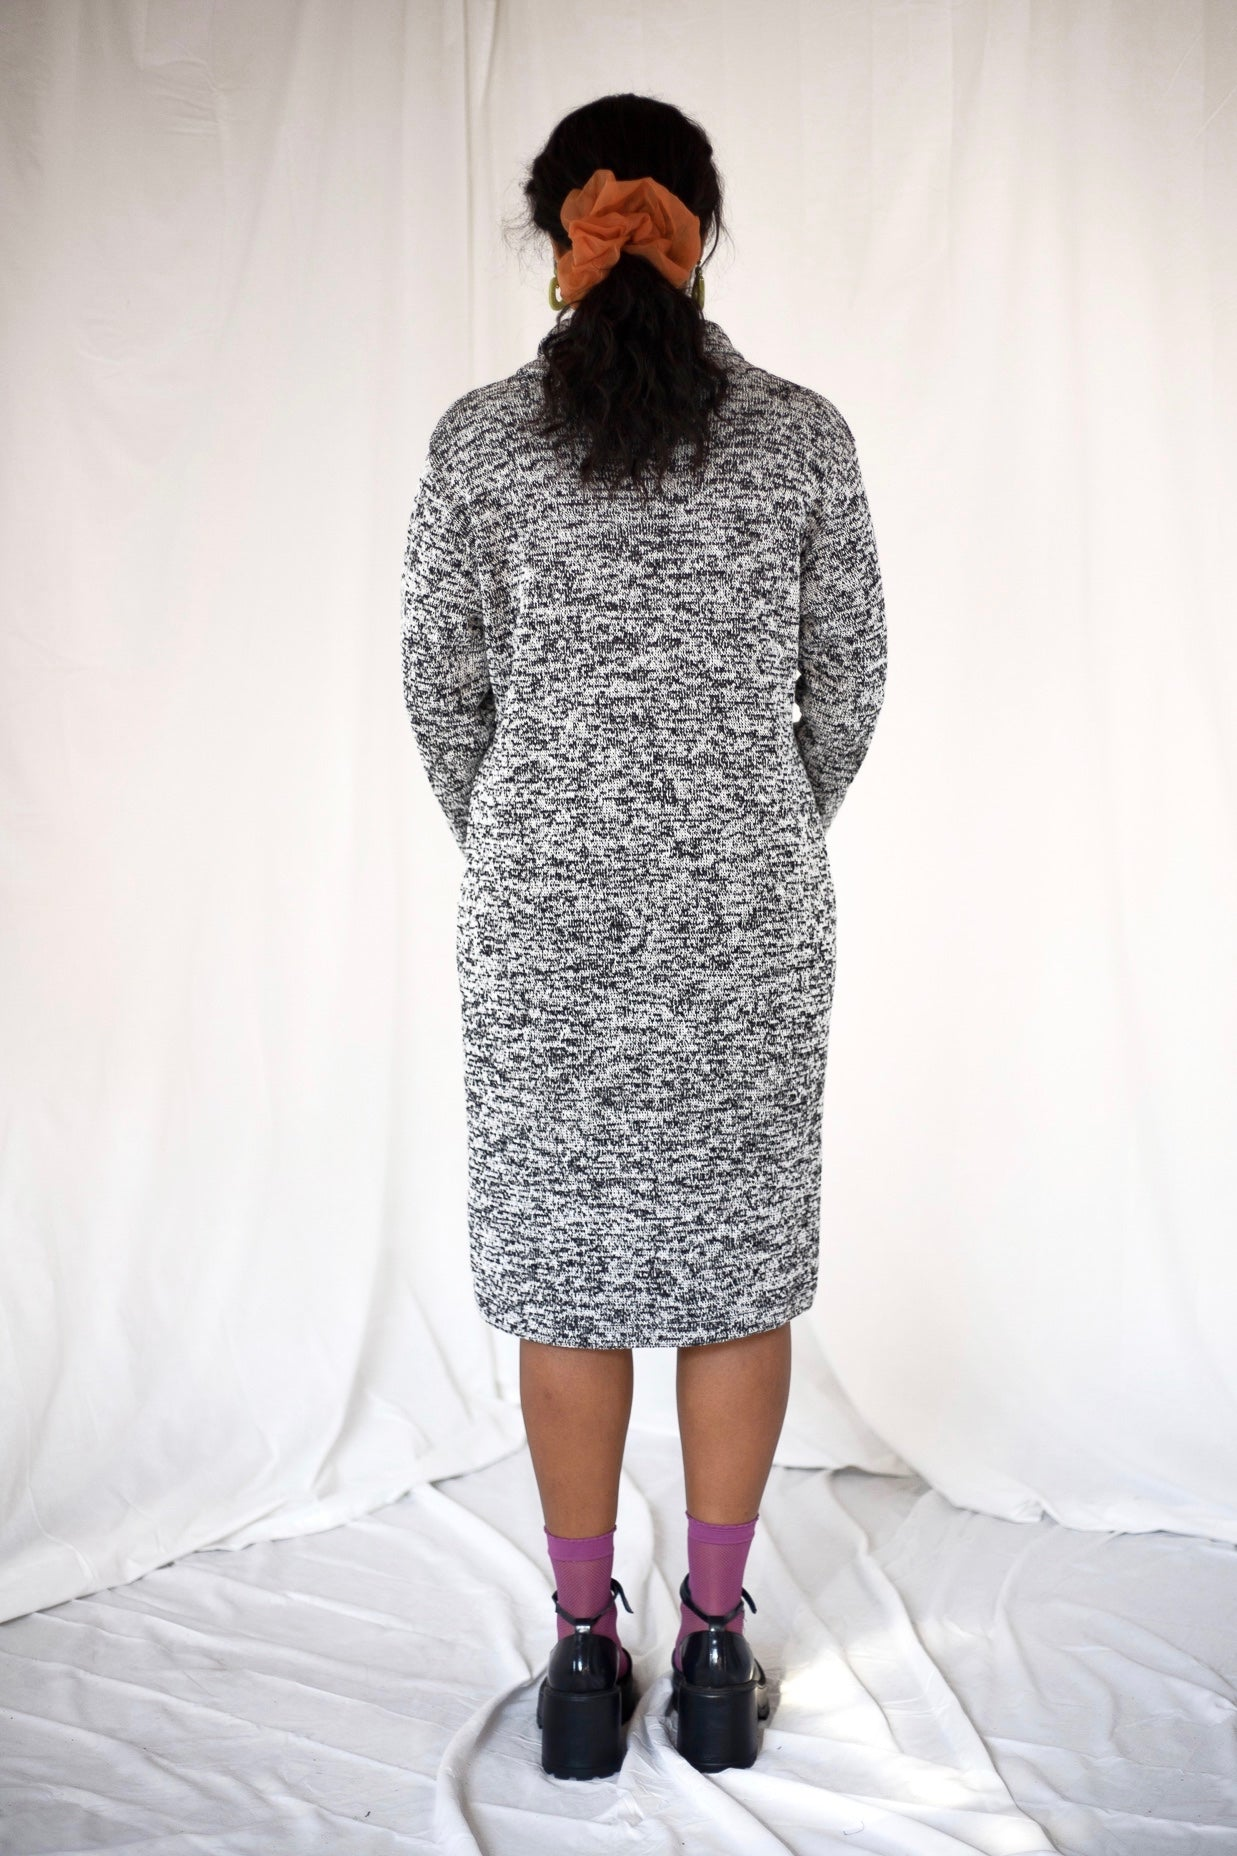 Grey Marl Knit Dress (M-L)